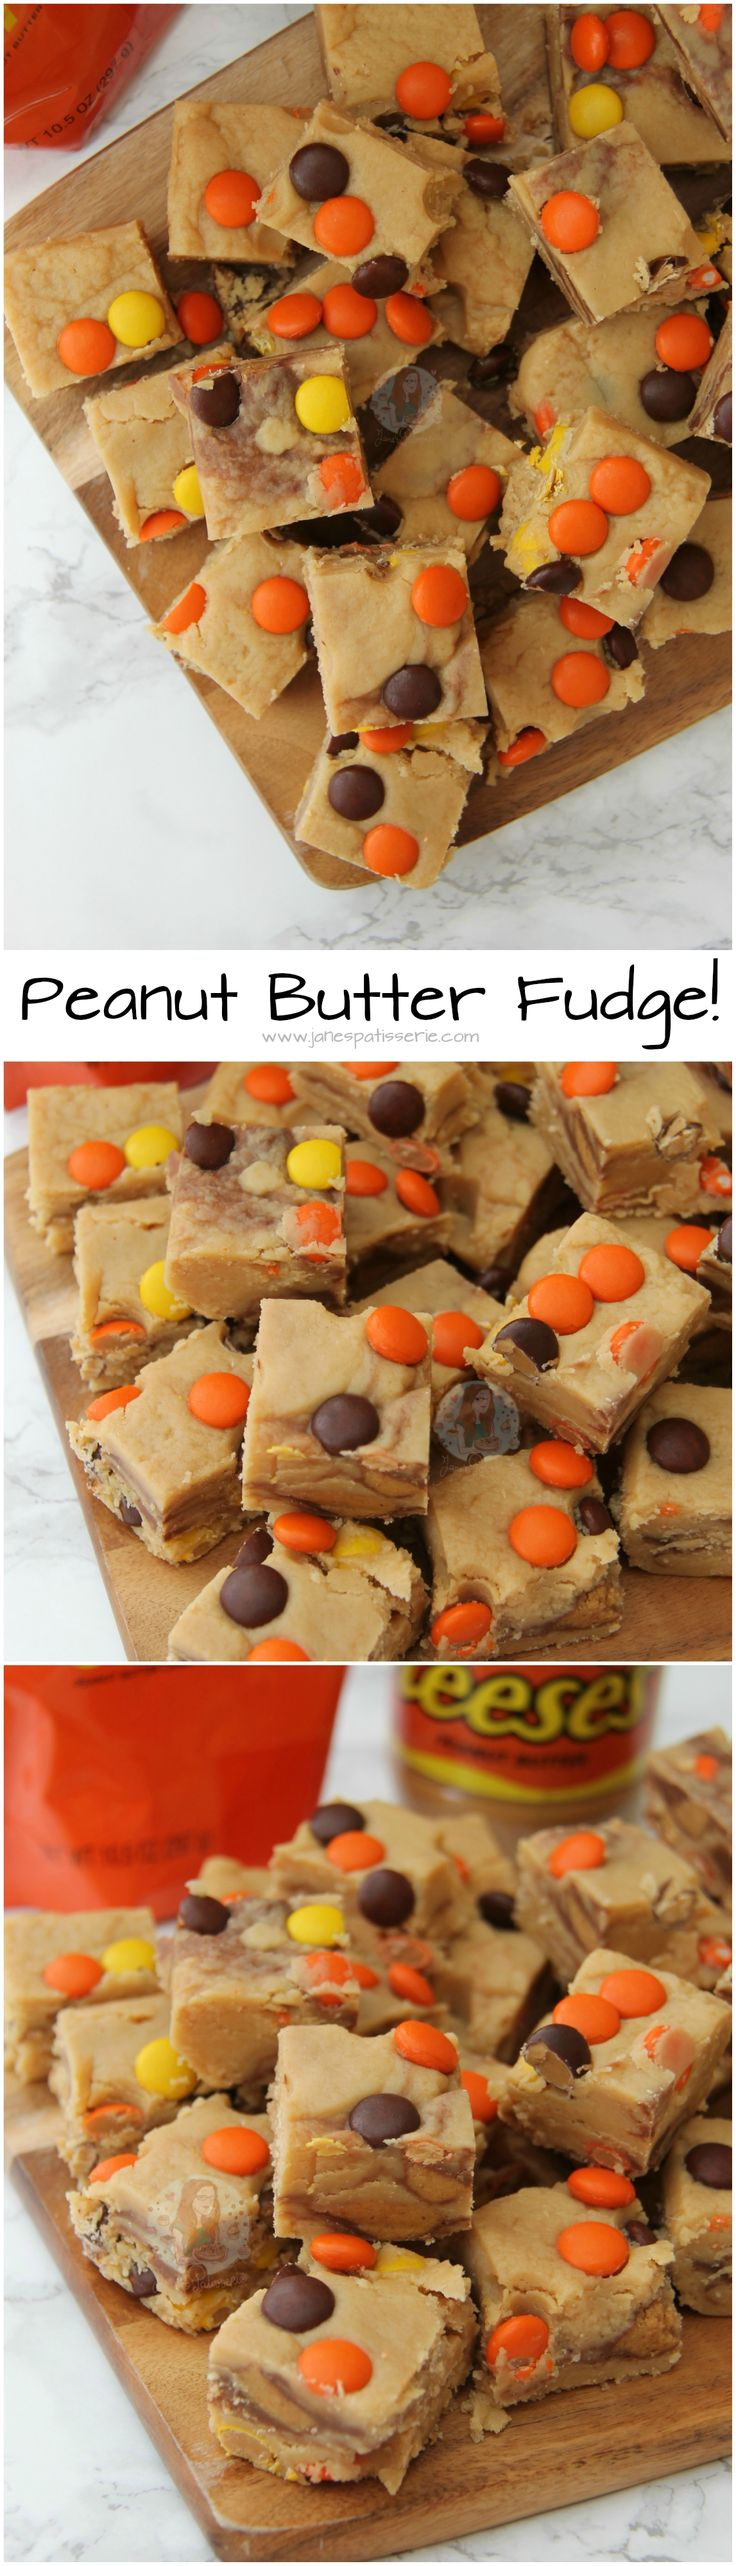 Peanut Butter Fudge! ❤️ Easy, Delicious, and Smooth Chocolate & Peanut Butter Fudge with Reese's Peanut Butter Cups & Reese's Pieces!